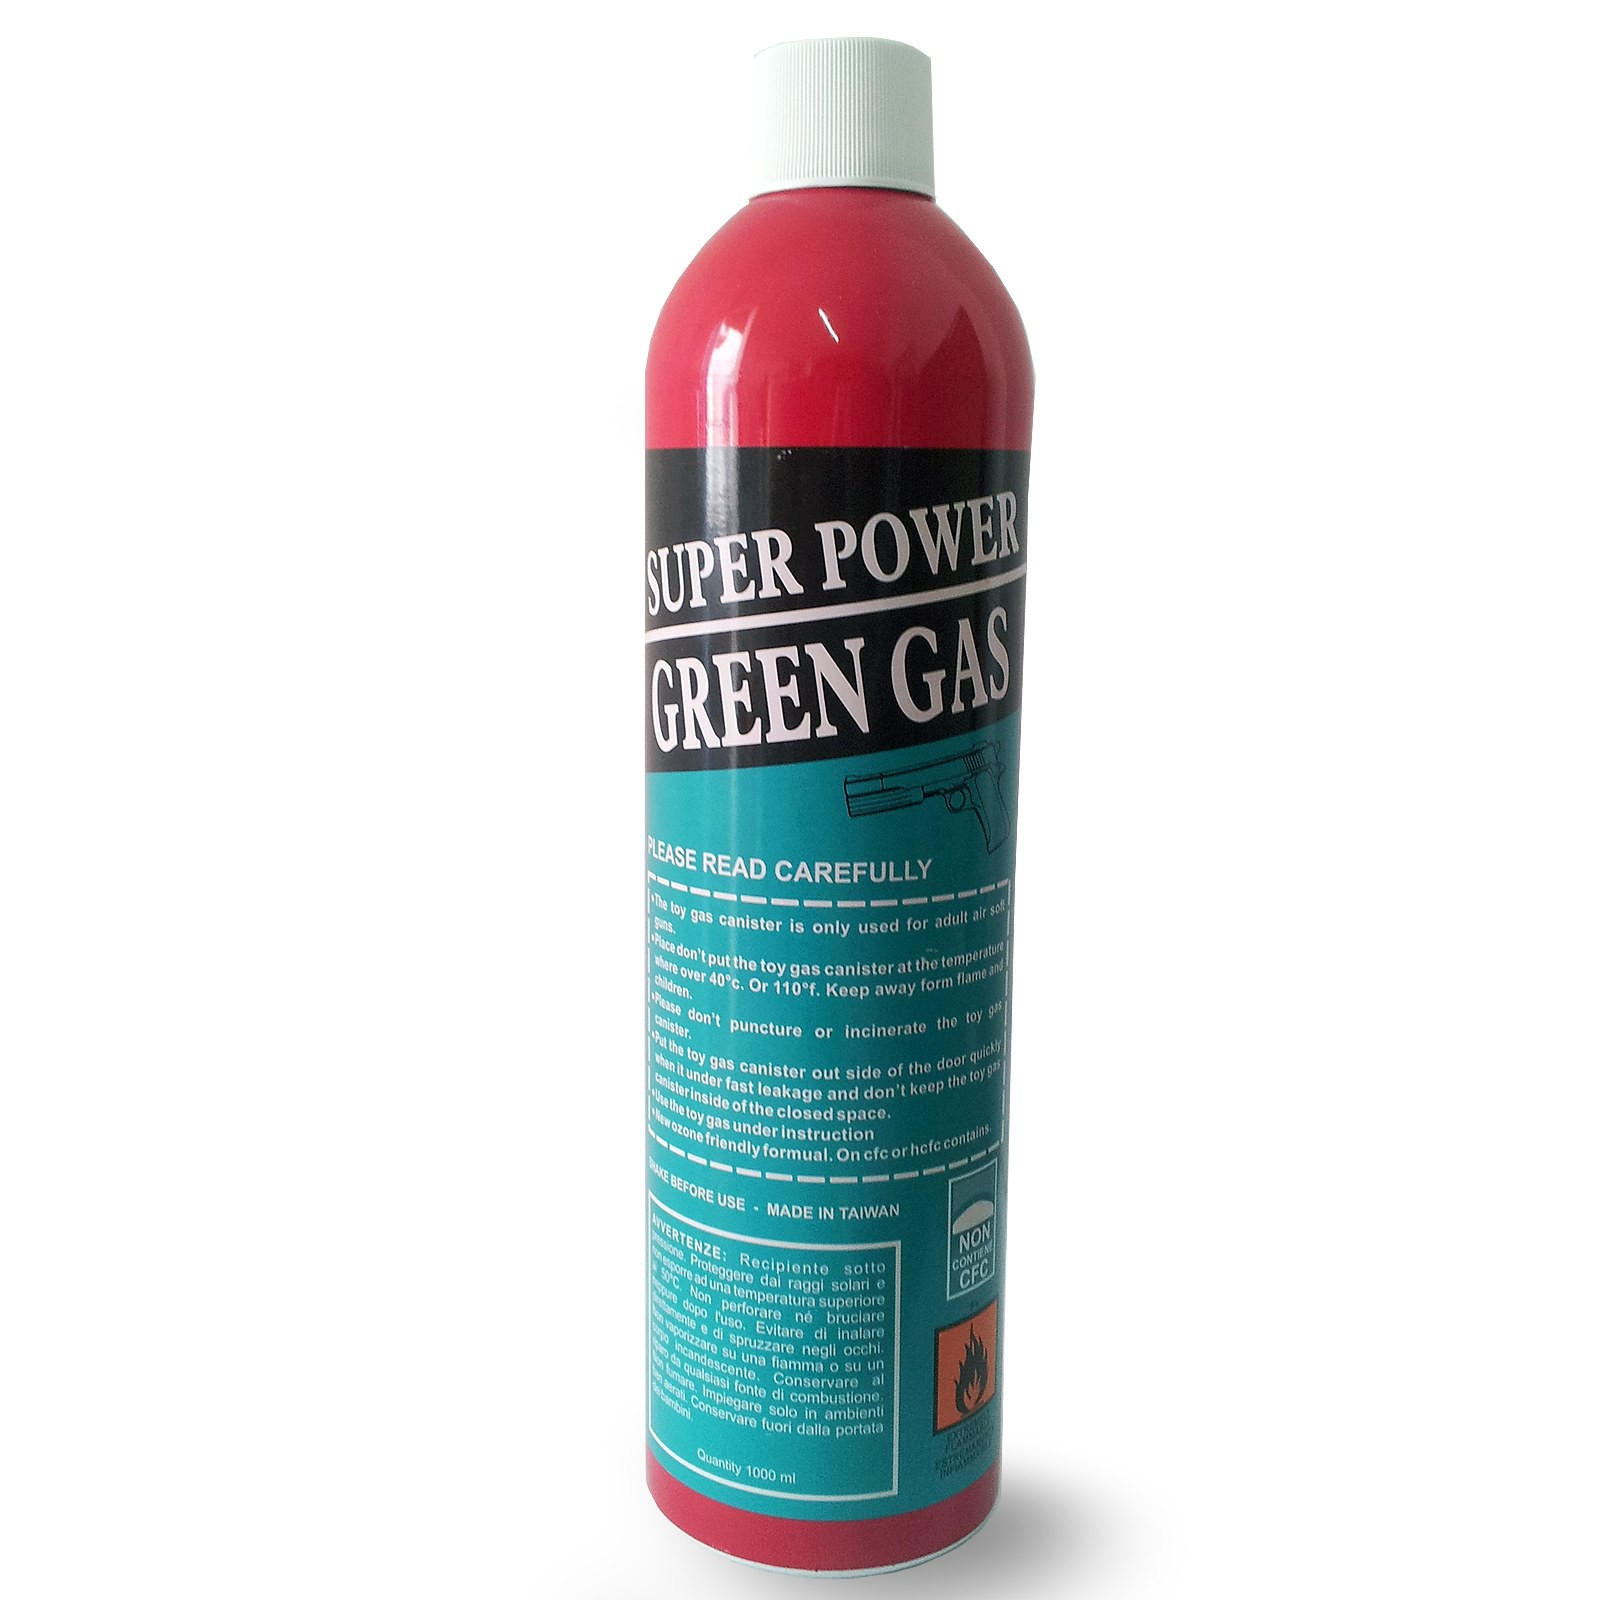 BOMBOLETTA BOMBOLA RICARICA GREEN GAS SUPER POWER PER SOFTAIR SOFT AIR DA 1000ML